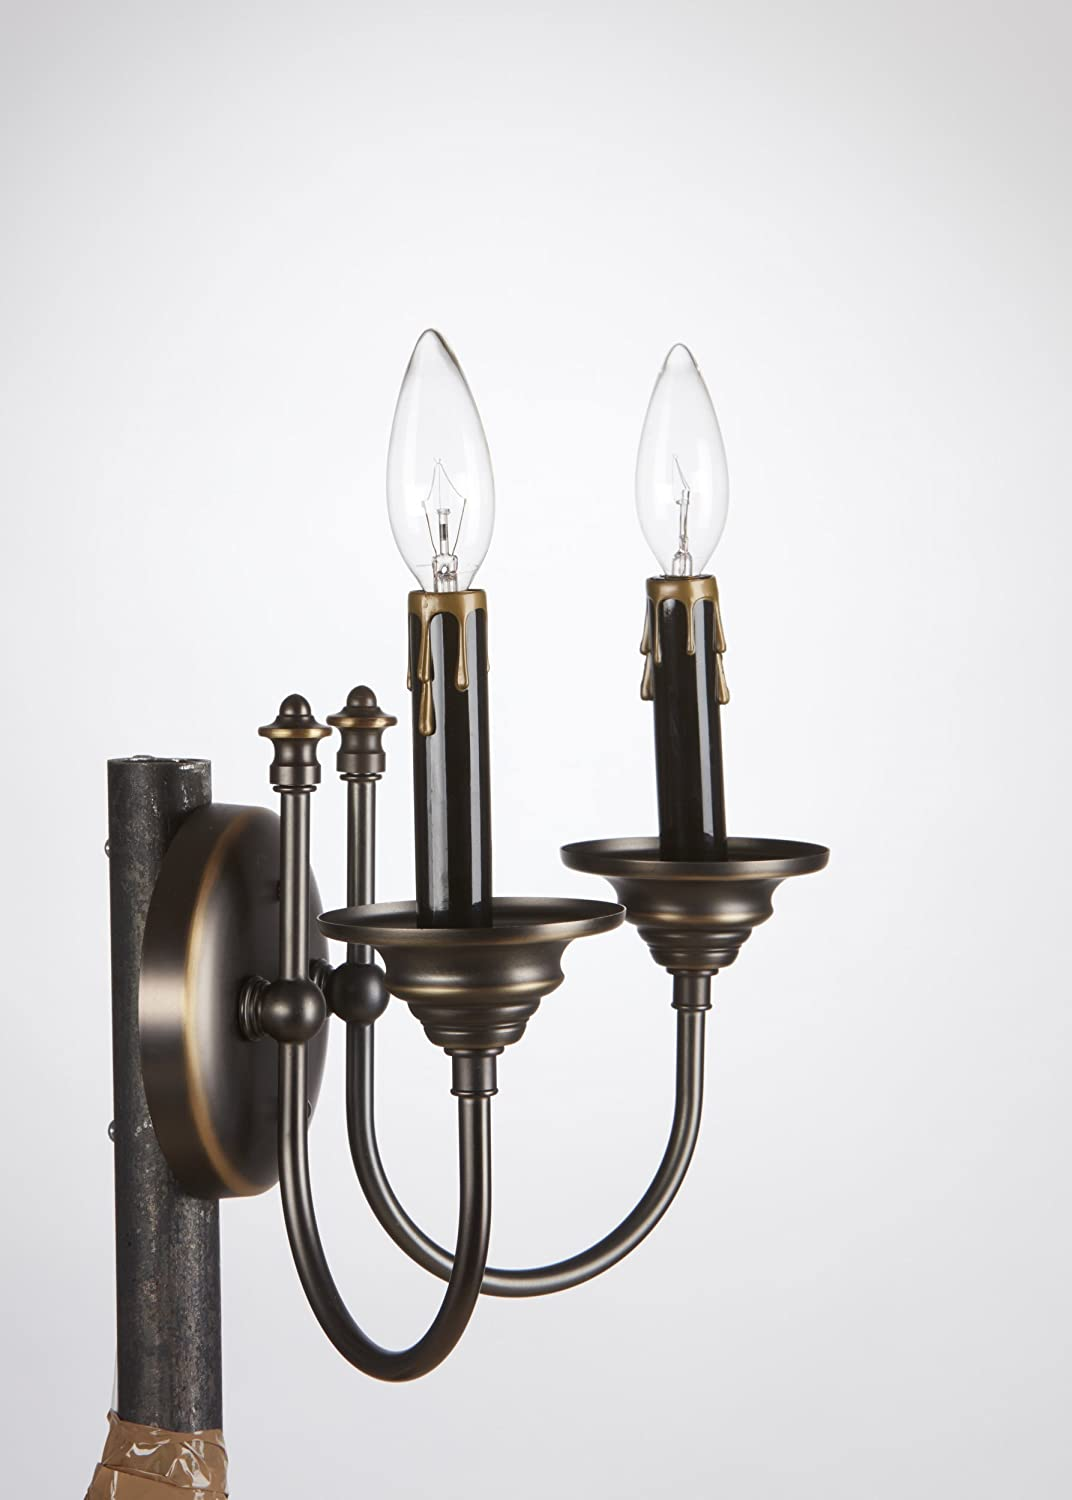 Upgradelights black gold fibre drip candle cover socket covers 3 upgradelights black gold fibre drip candle cover socket covers 34 inch diameter sleeves chandeliers amazon arubaitofo Images